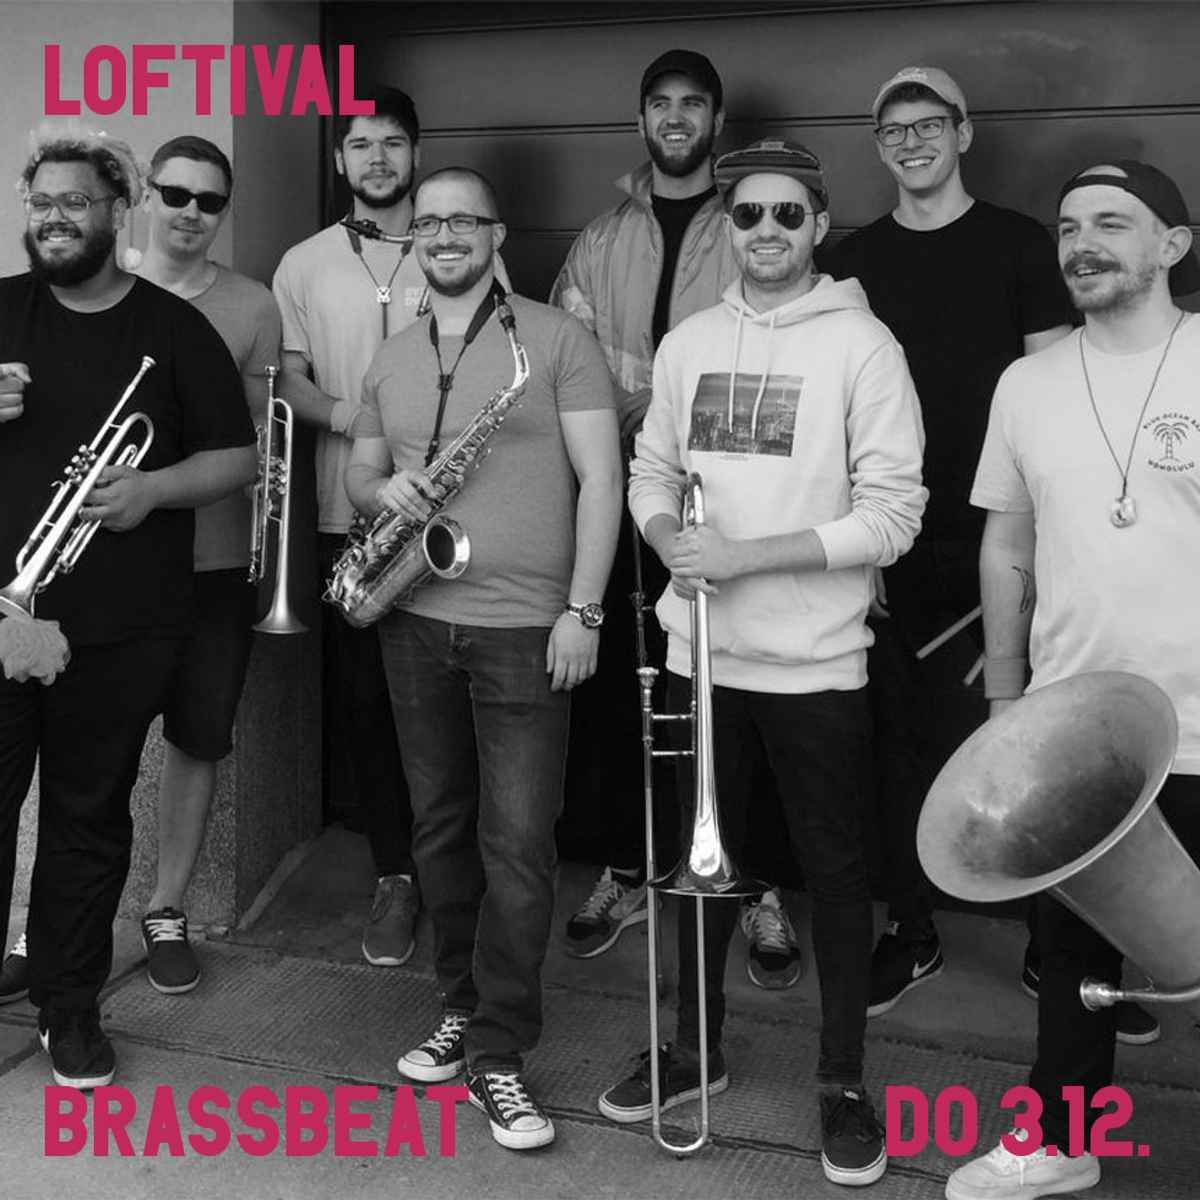 Loftival hosted by Phat Jam mit Byrd & Brassbeat event impressions #3